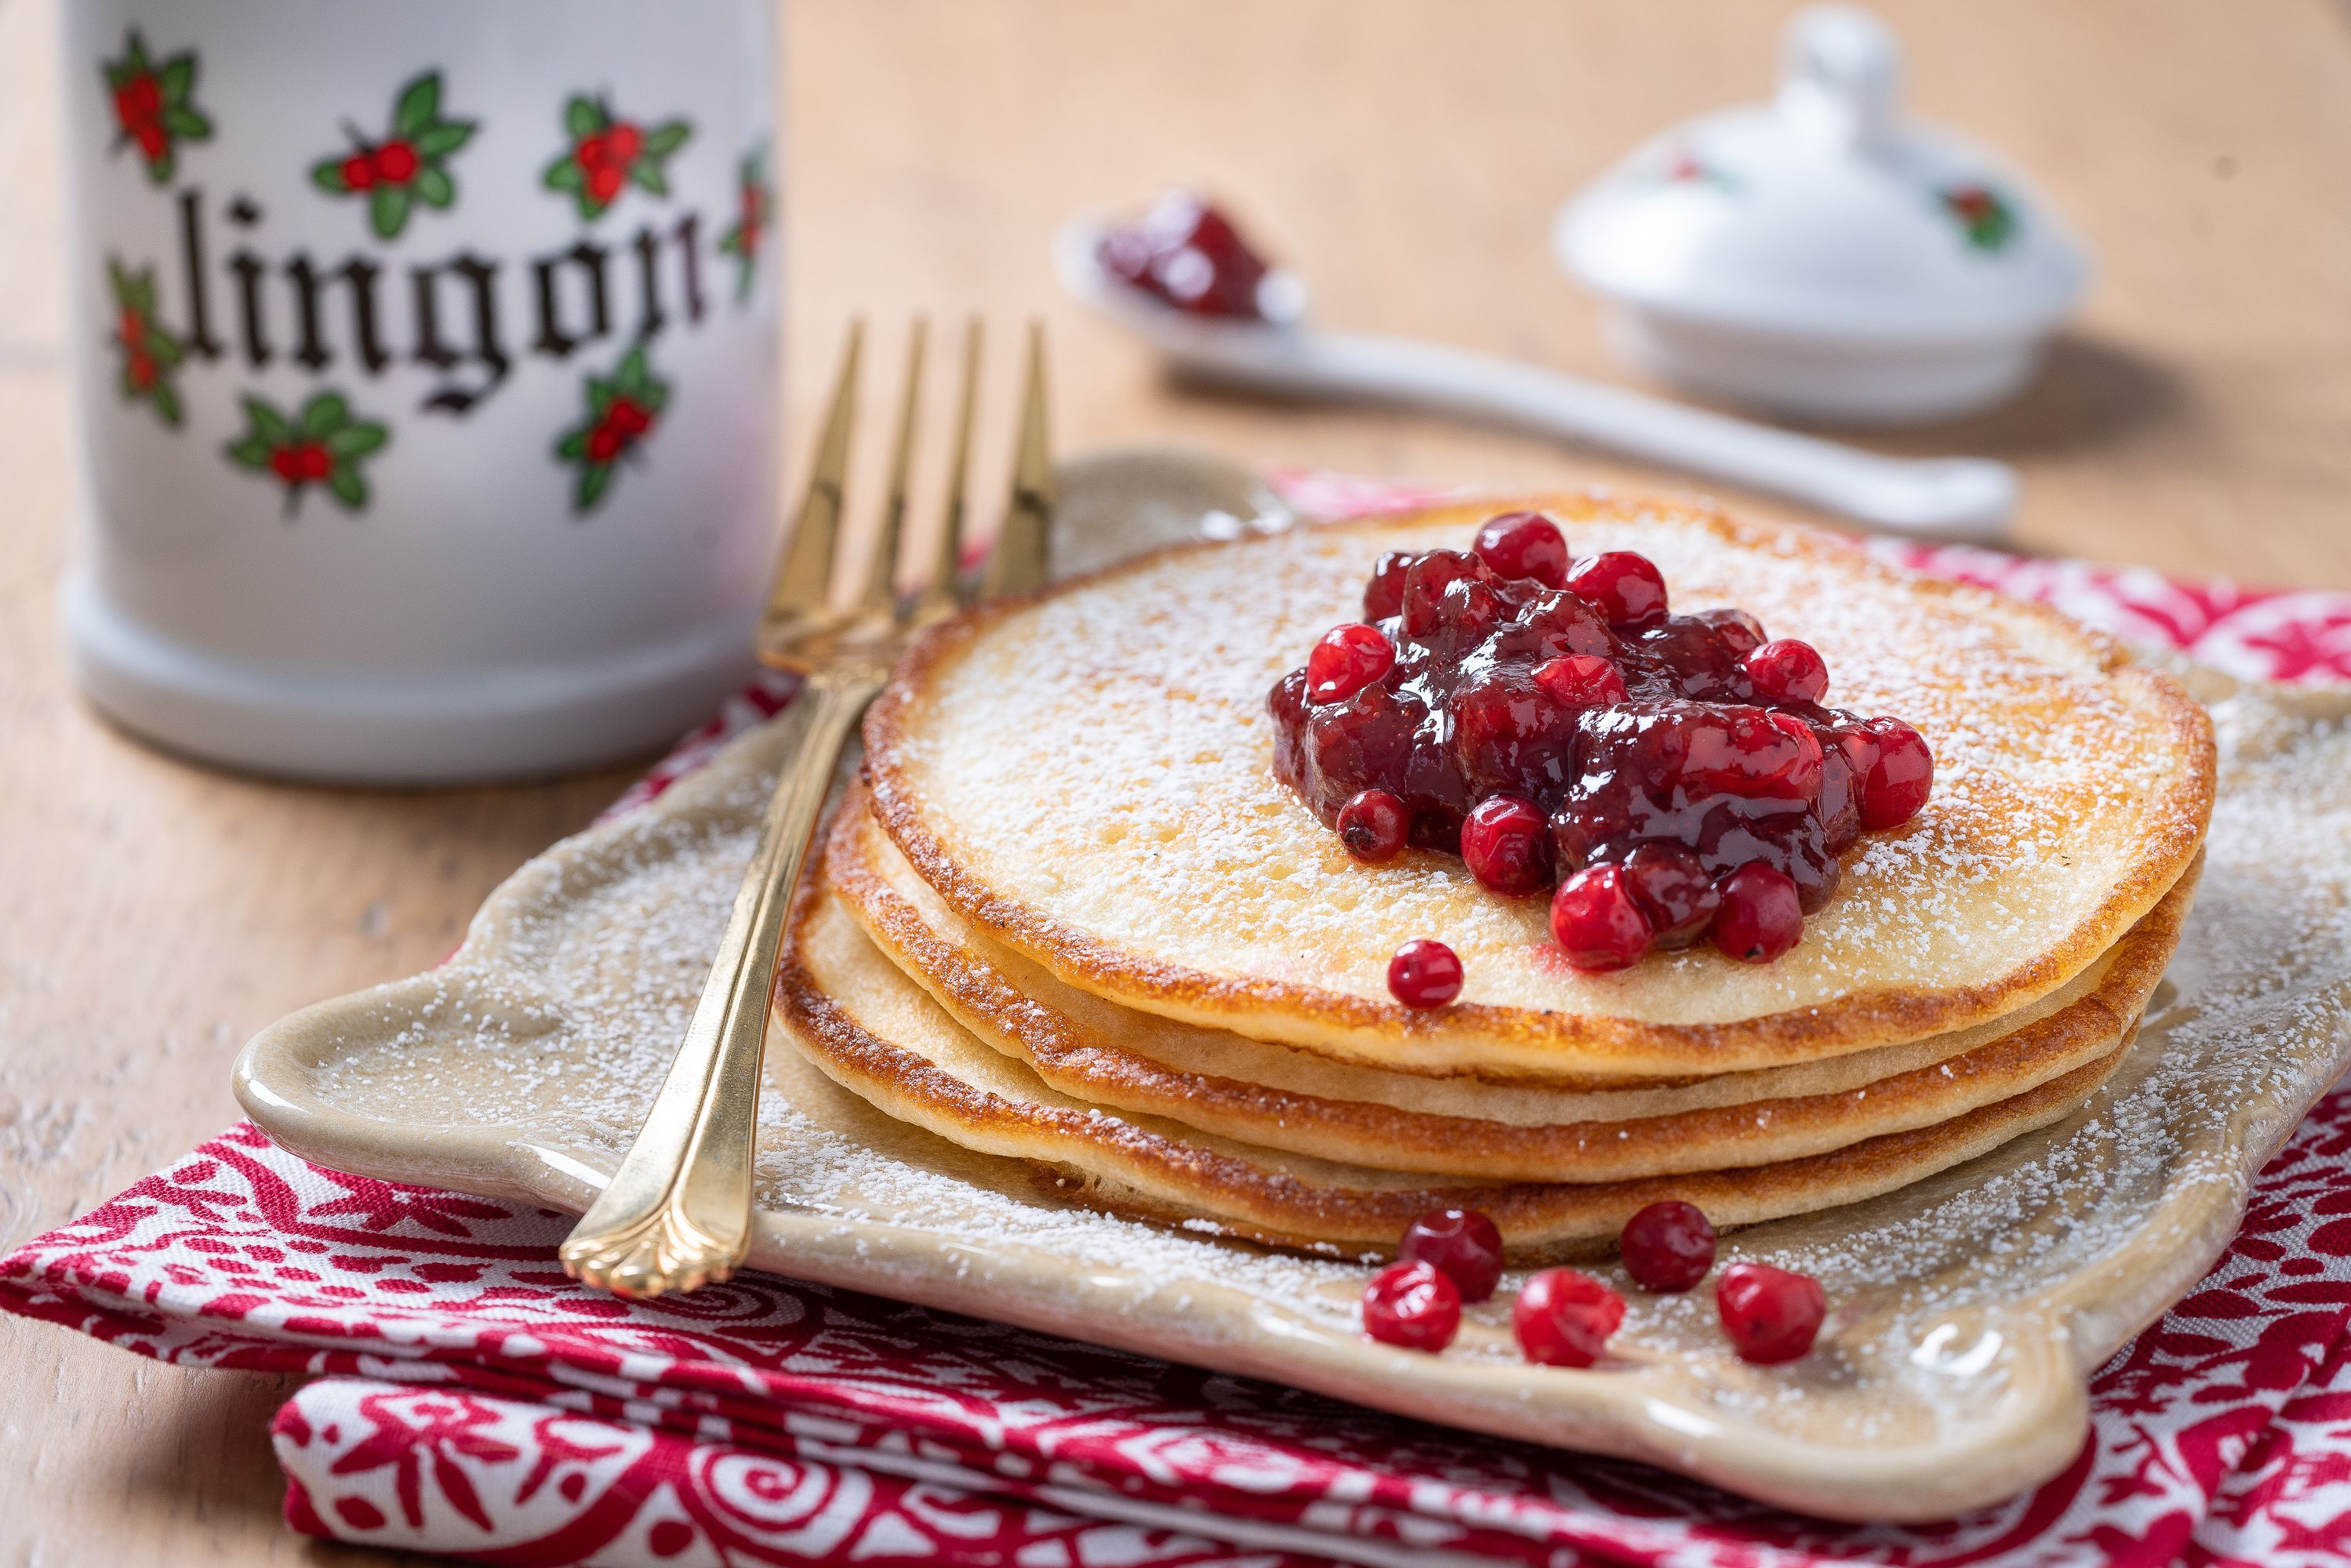 4874a2425071e6dd6a4cfed8d20c5868 - Swedish Pancakes Better Homes And Gardens